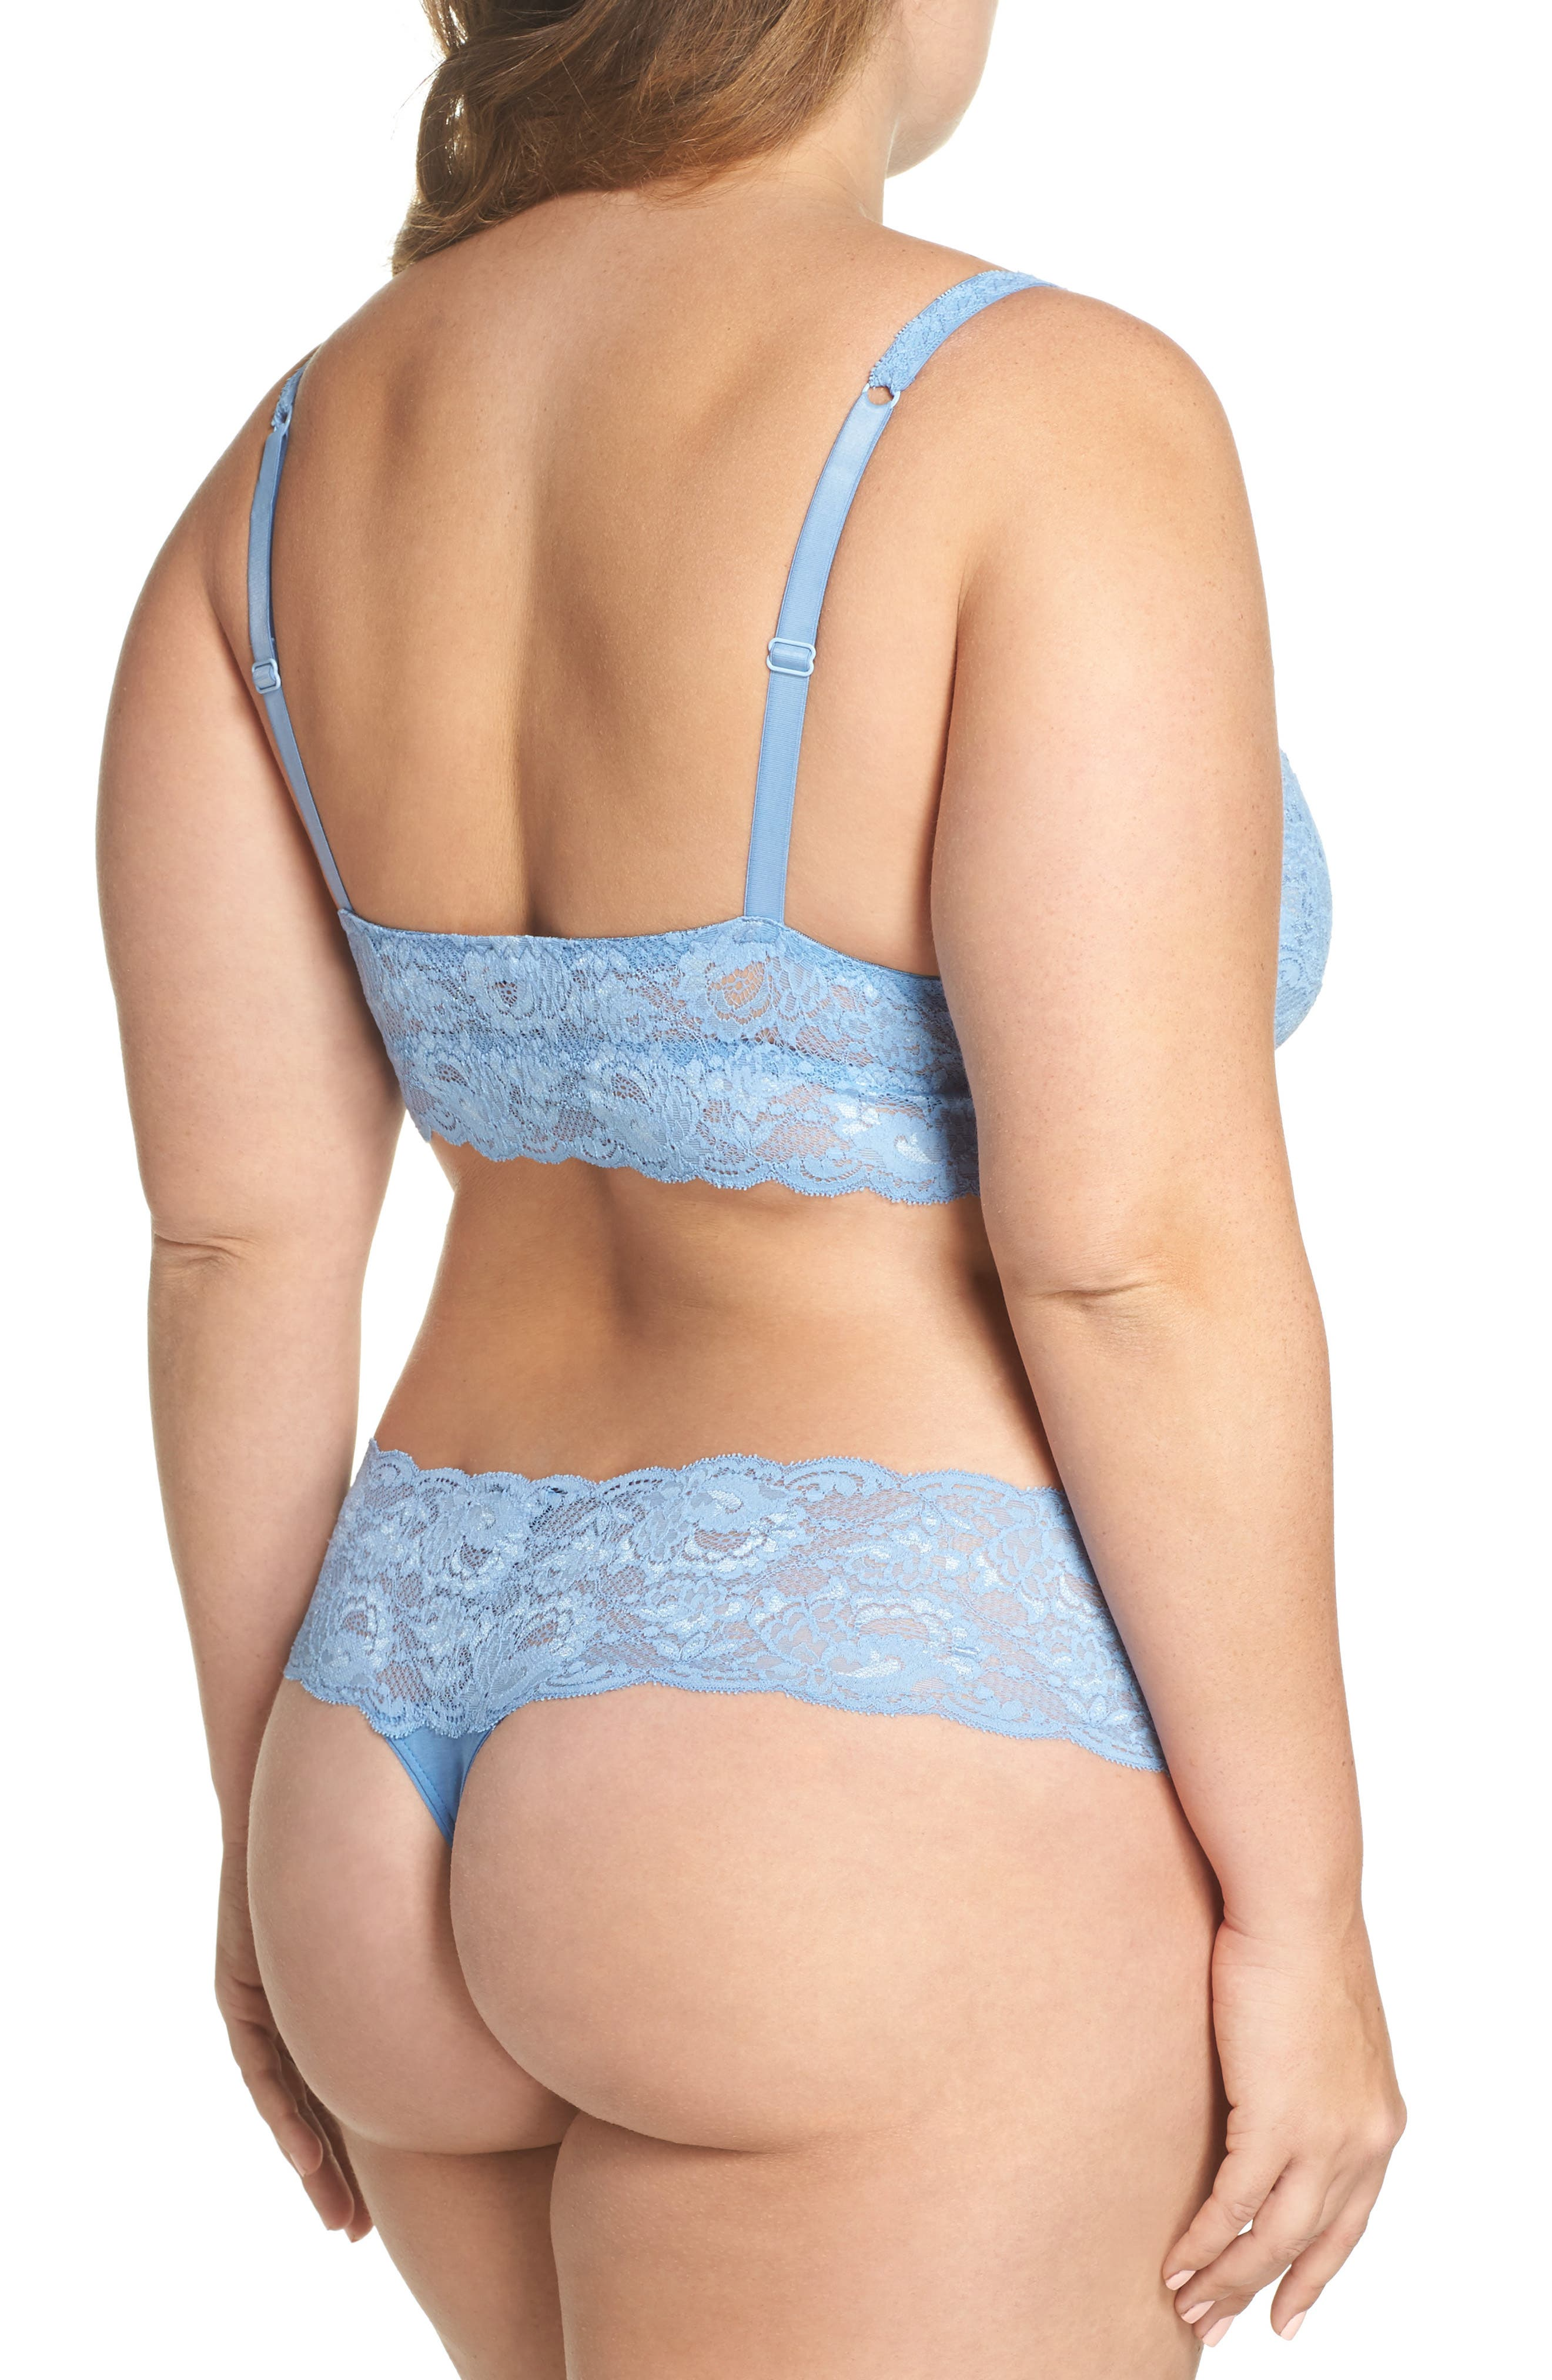 'Never Say Never Lovely' Thong,                             Alternate thumbnail 6, color,                             Jewel Blue